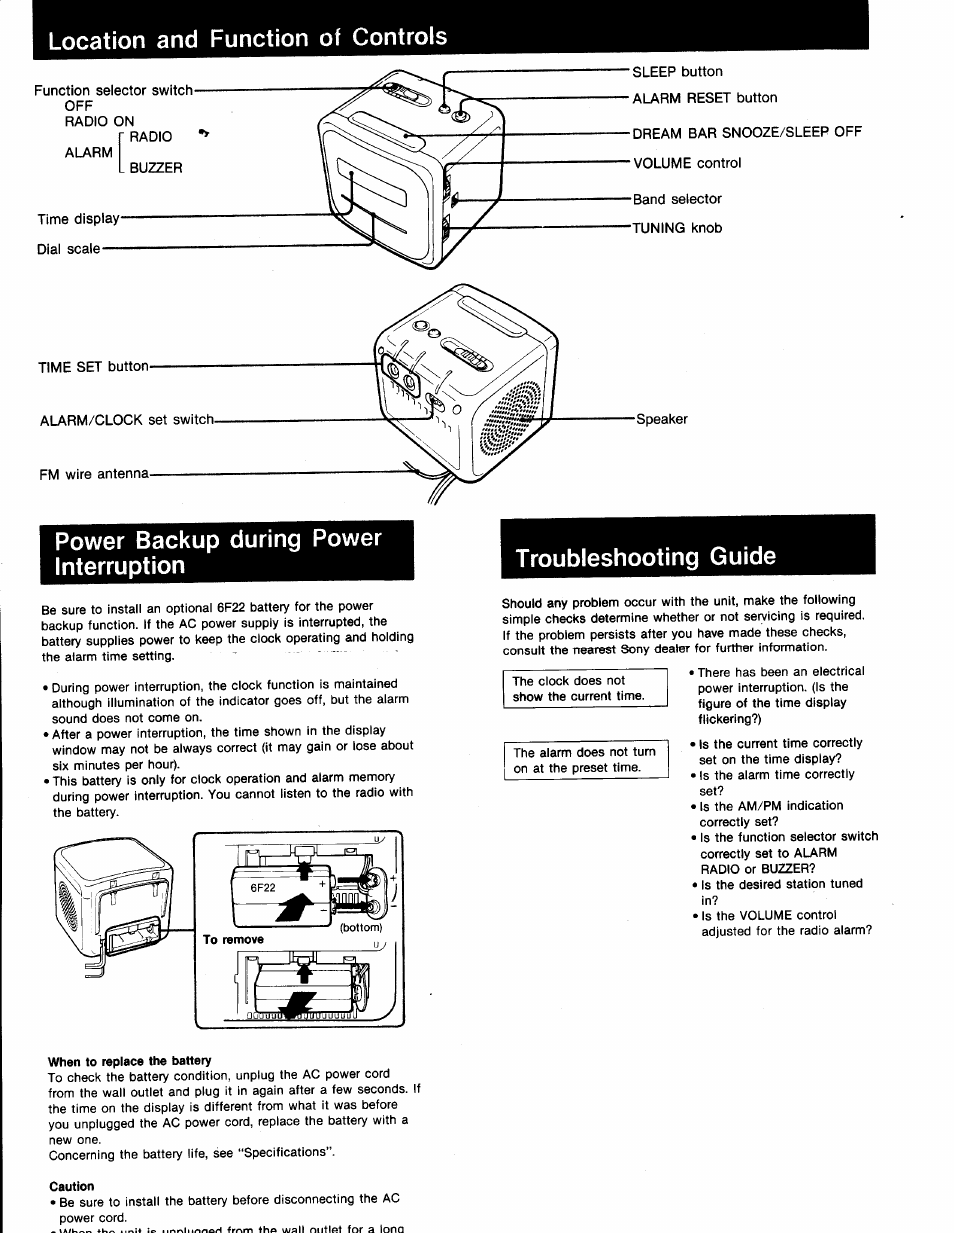 Location and function of controls, Power backup during